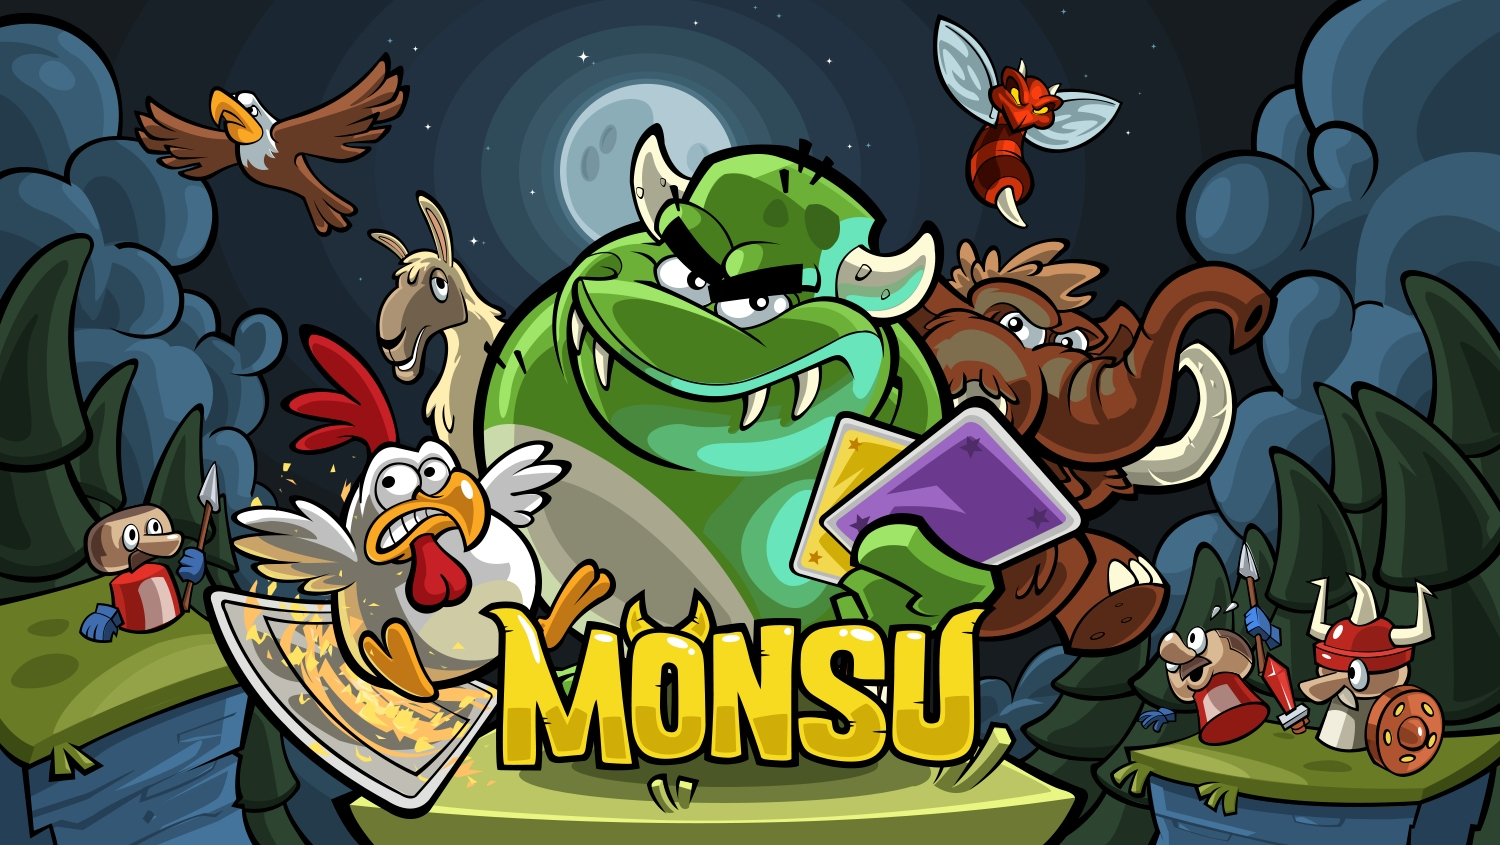 Monsu is a monster-fuelled F2P card-based action platformer now available in New Zealand